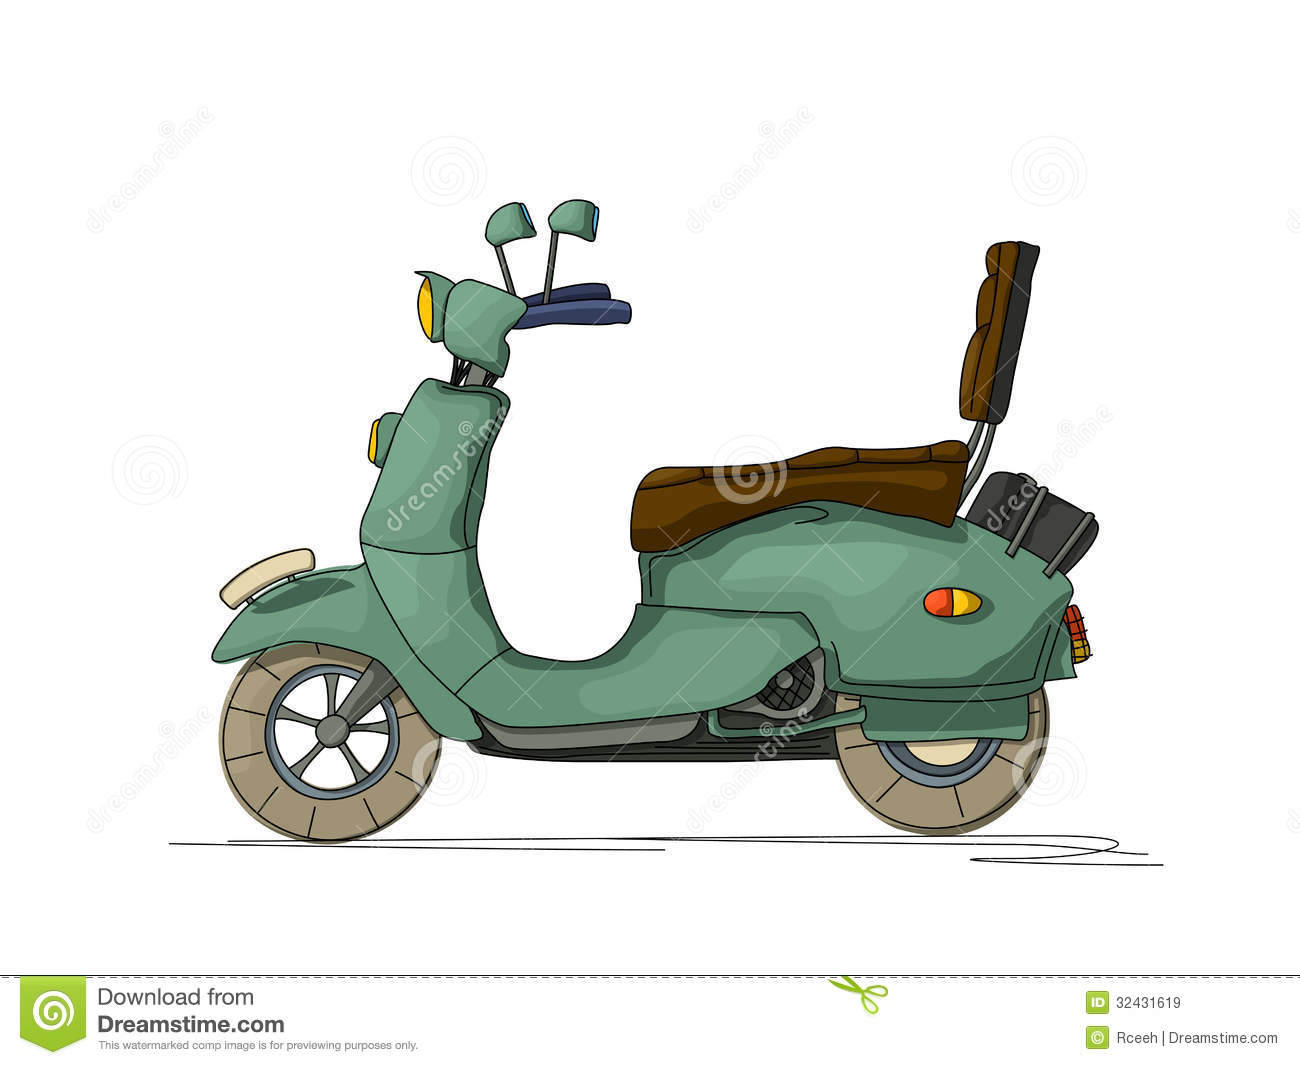 Cartoon style drawing of a retro scooter, isolated object on white ...